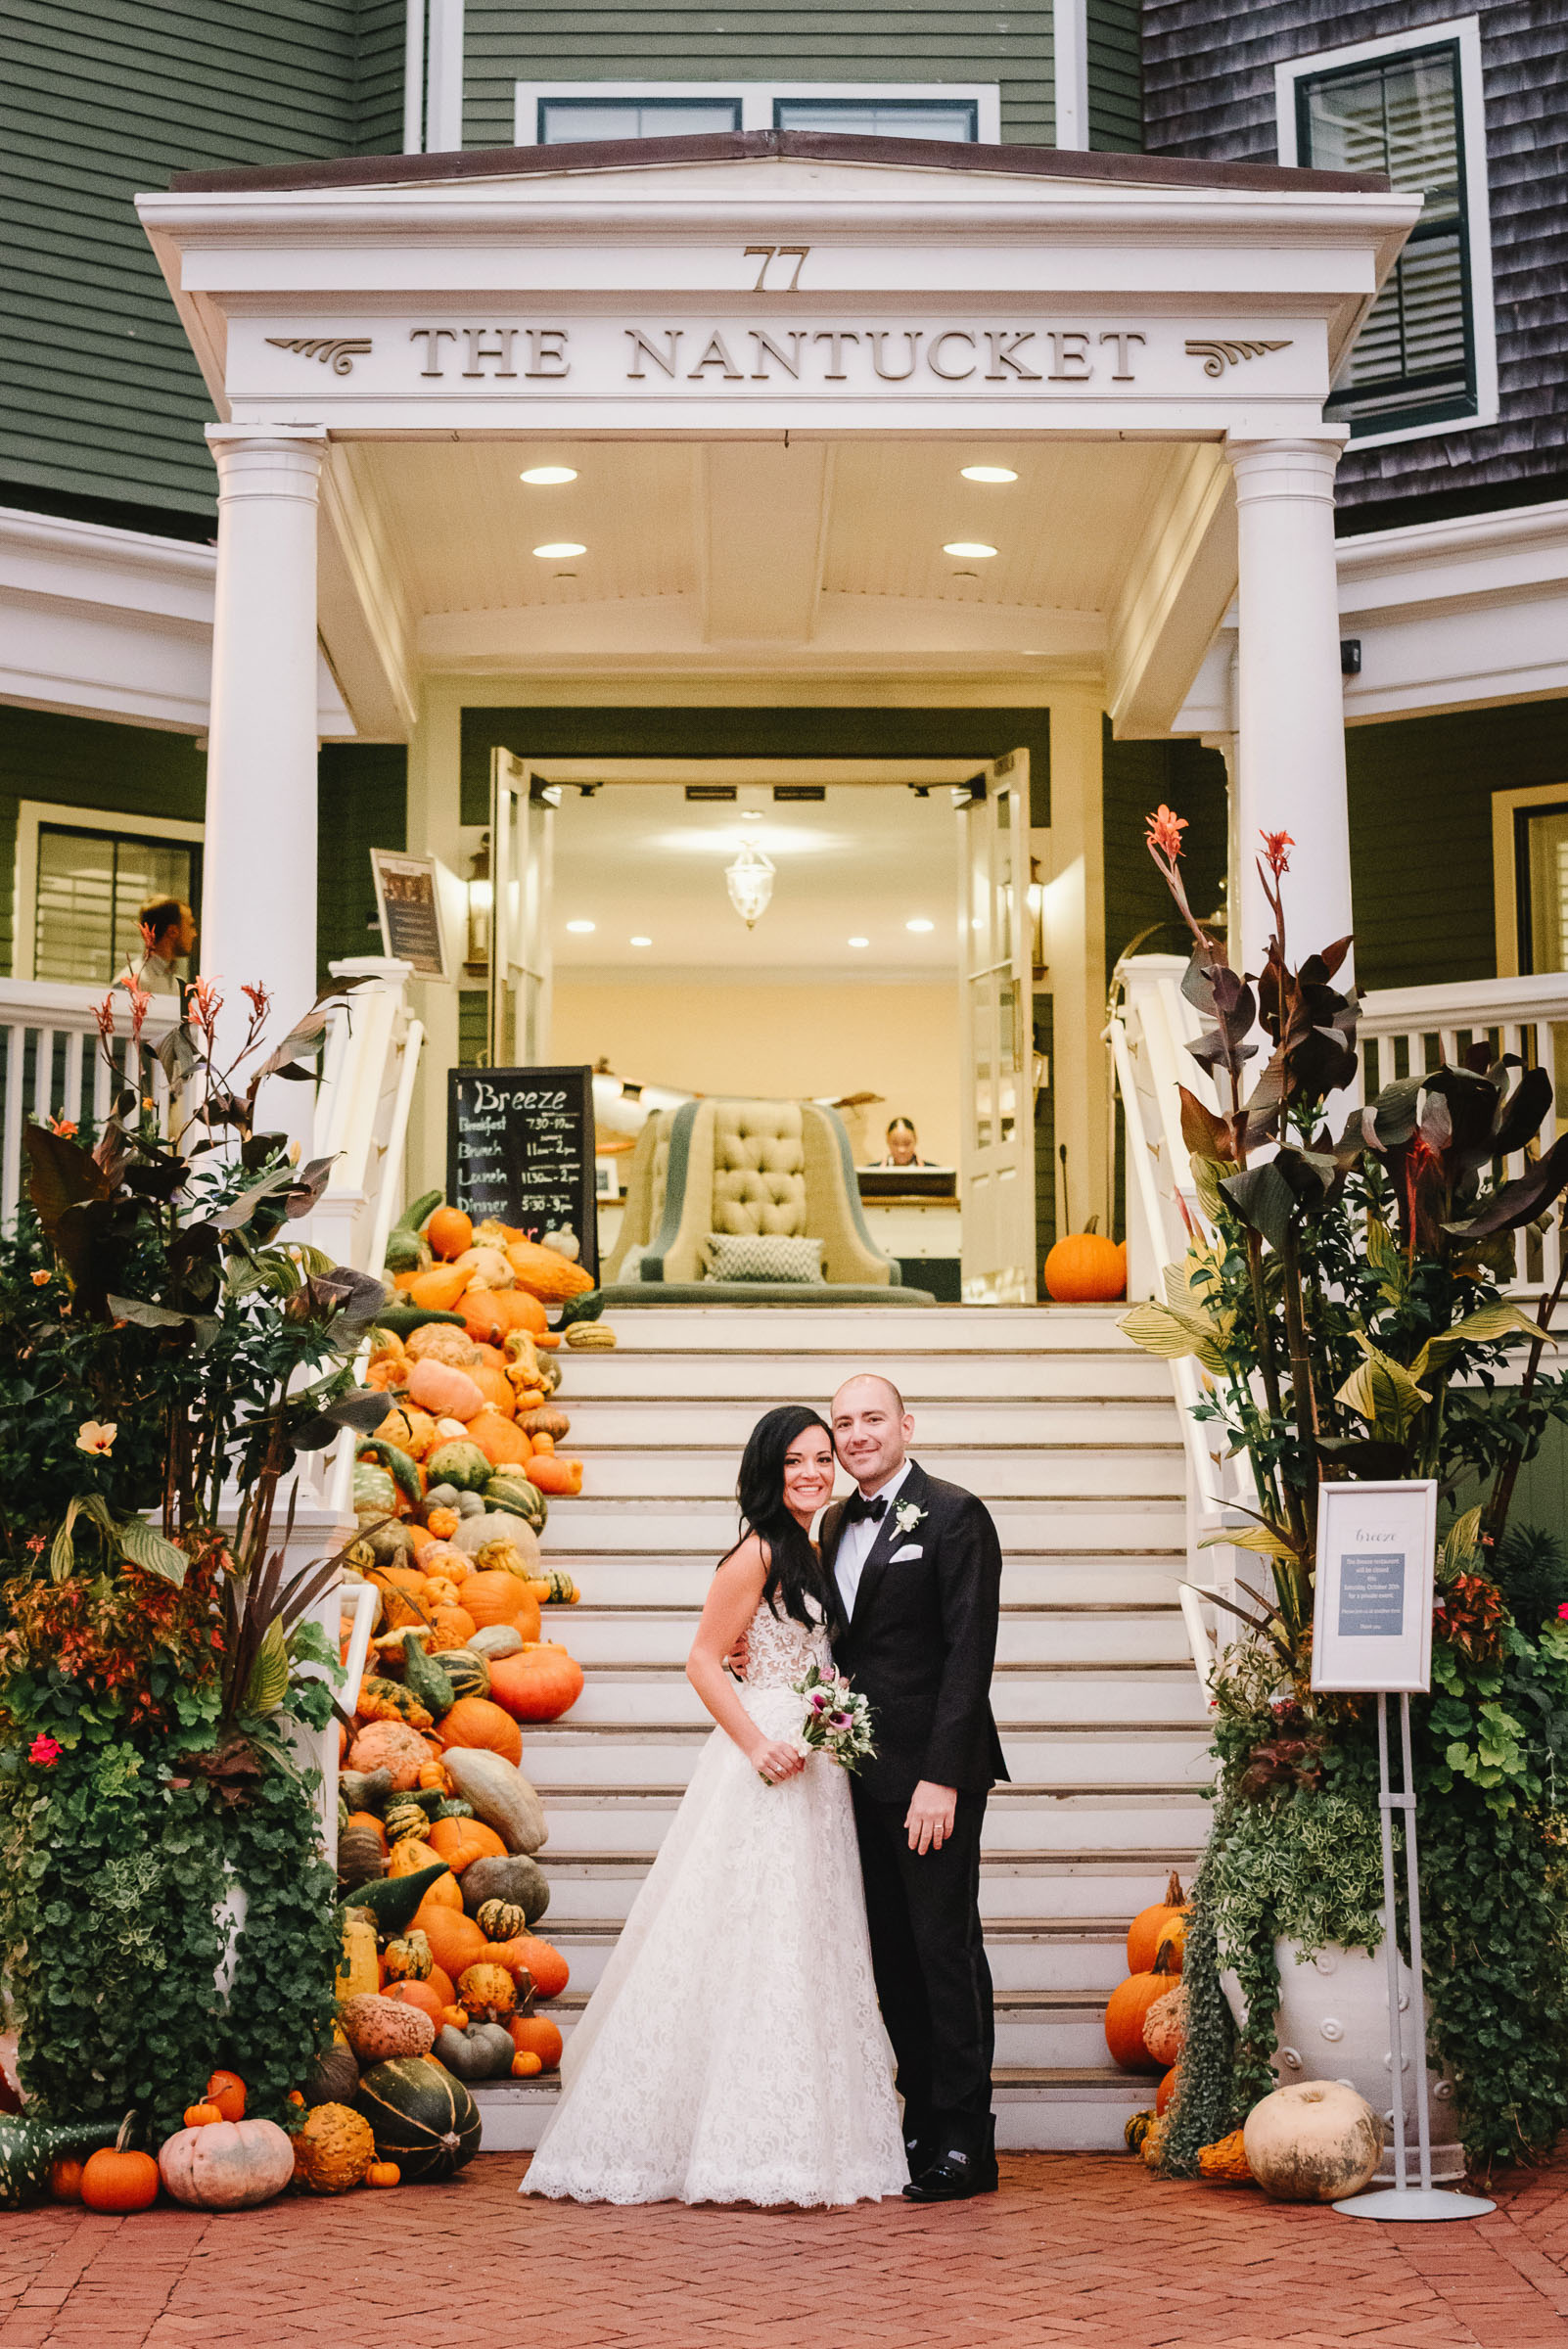 couple-pose-at-the-nantucket-with-autumn-harvest-decor-zofia-co-photography